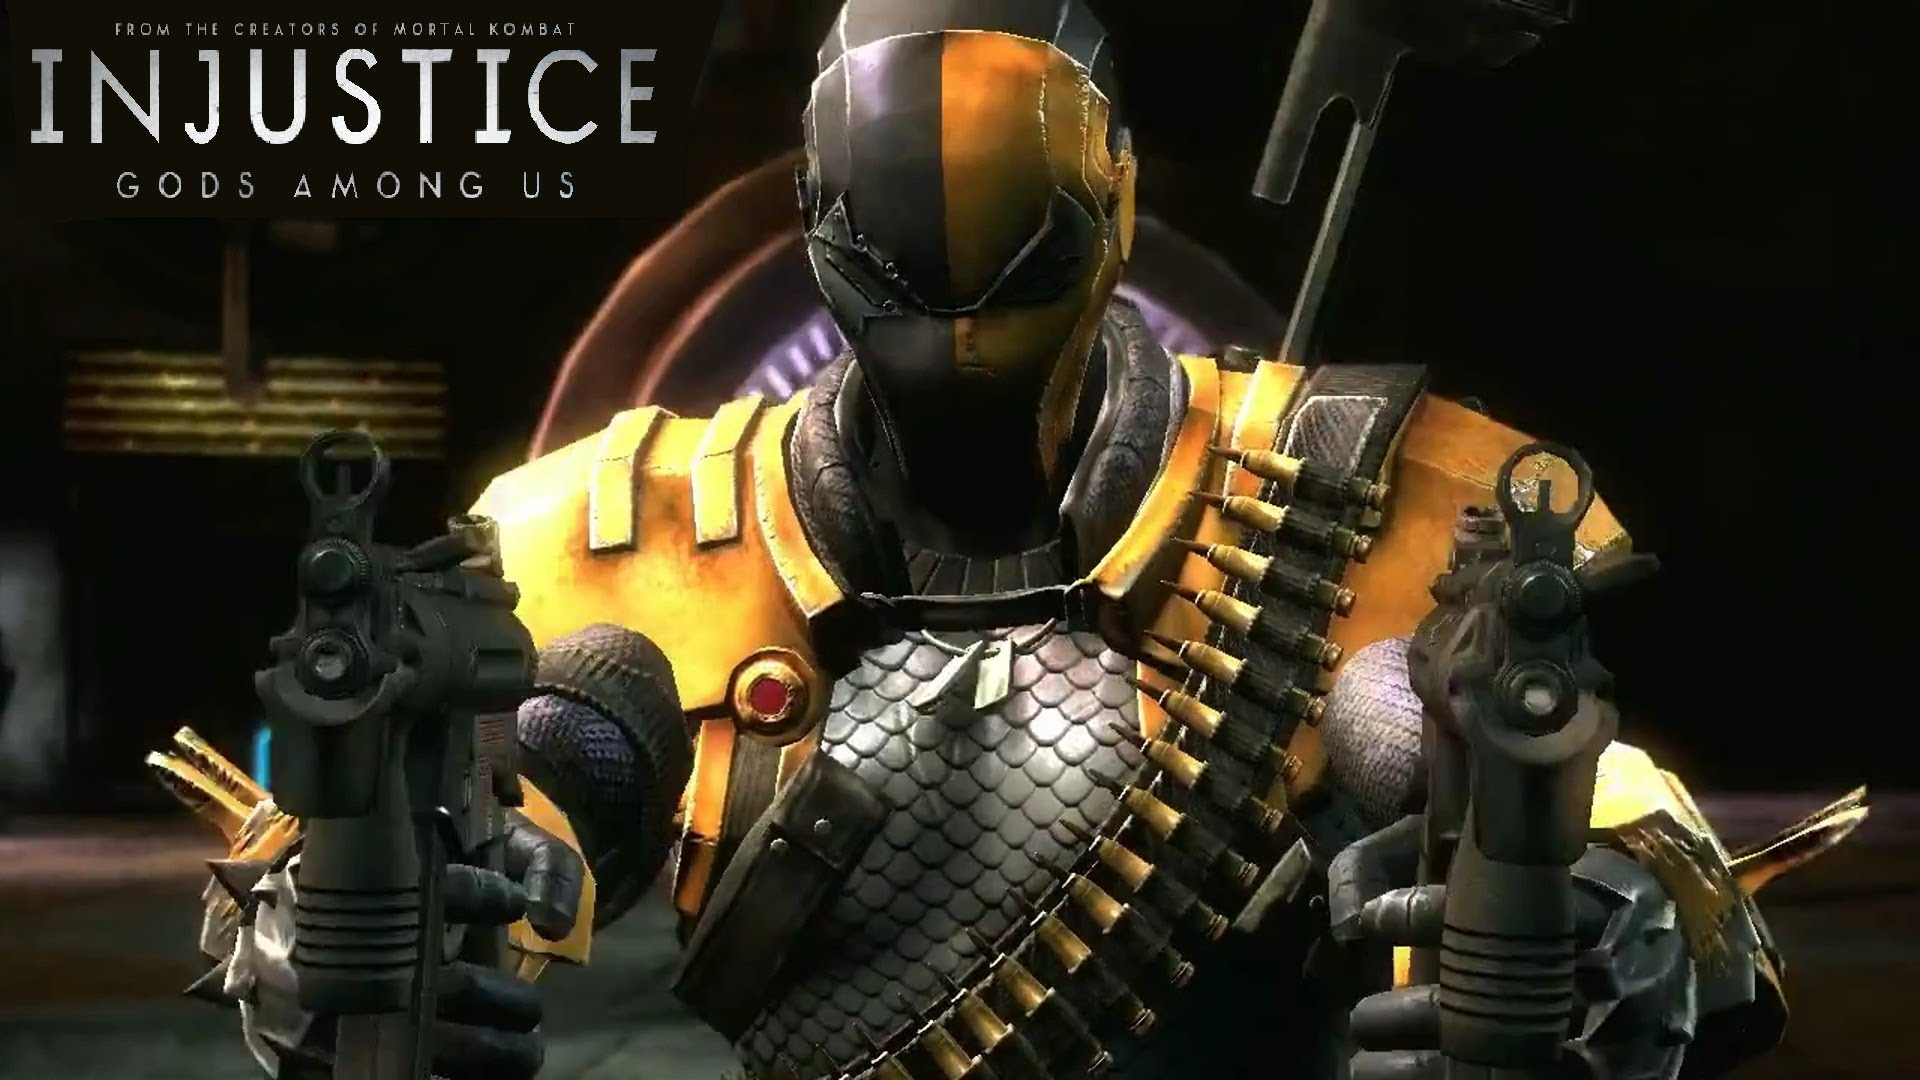 Injustice Deathstroke Reveal PS3XBOX360WiiU HD 1920x1080